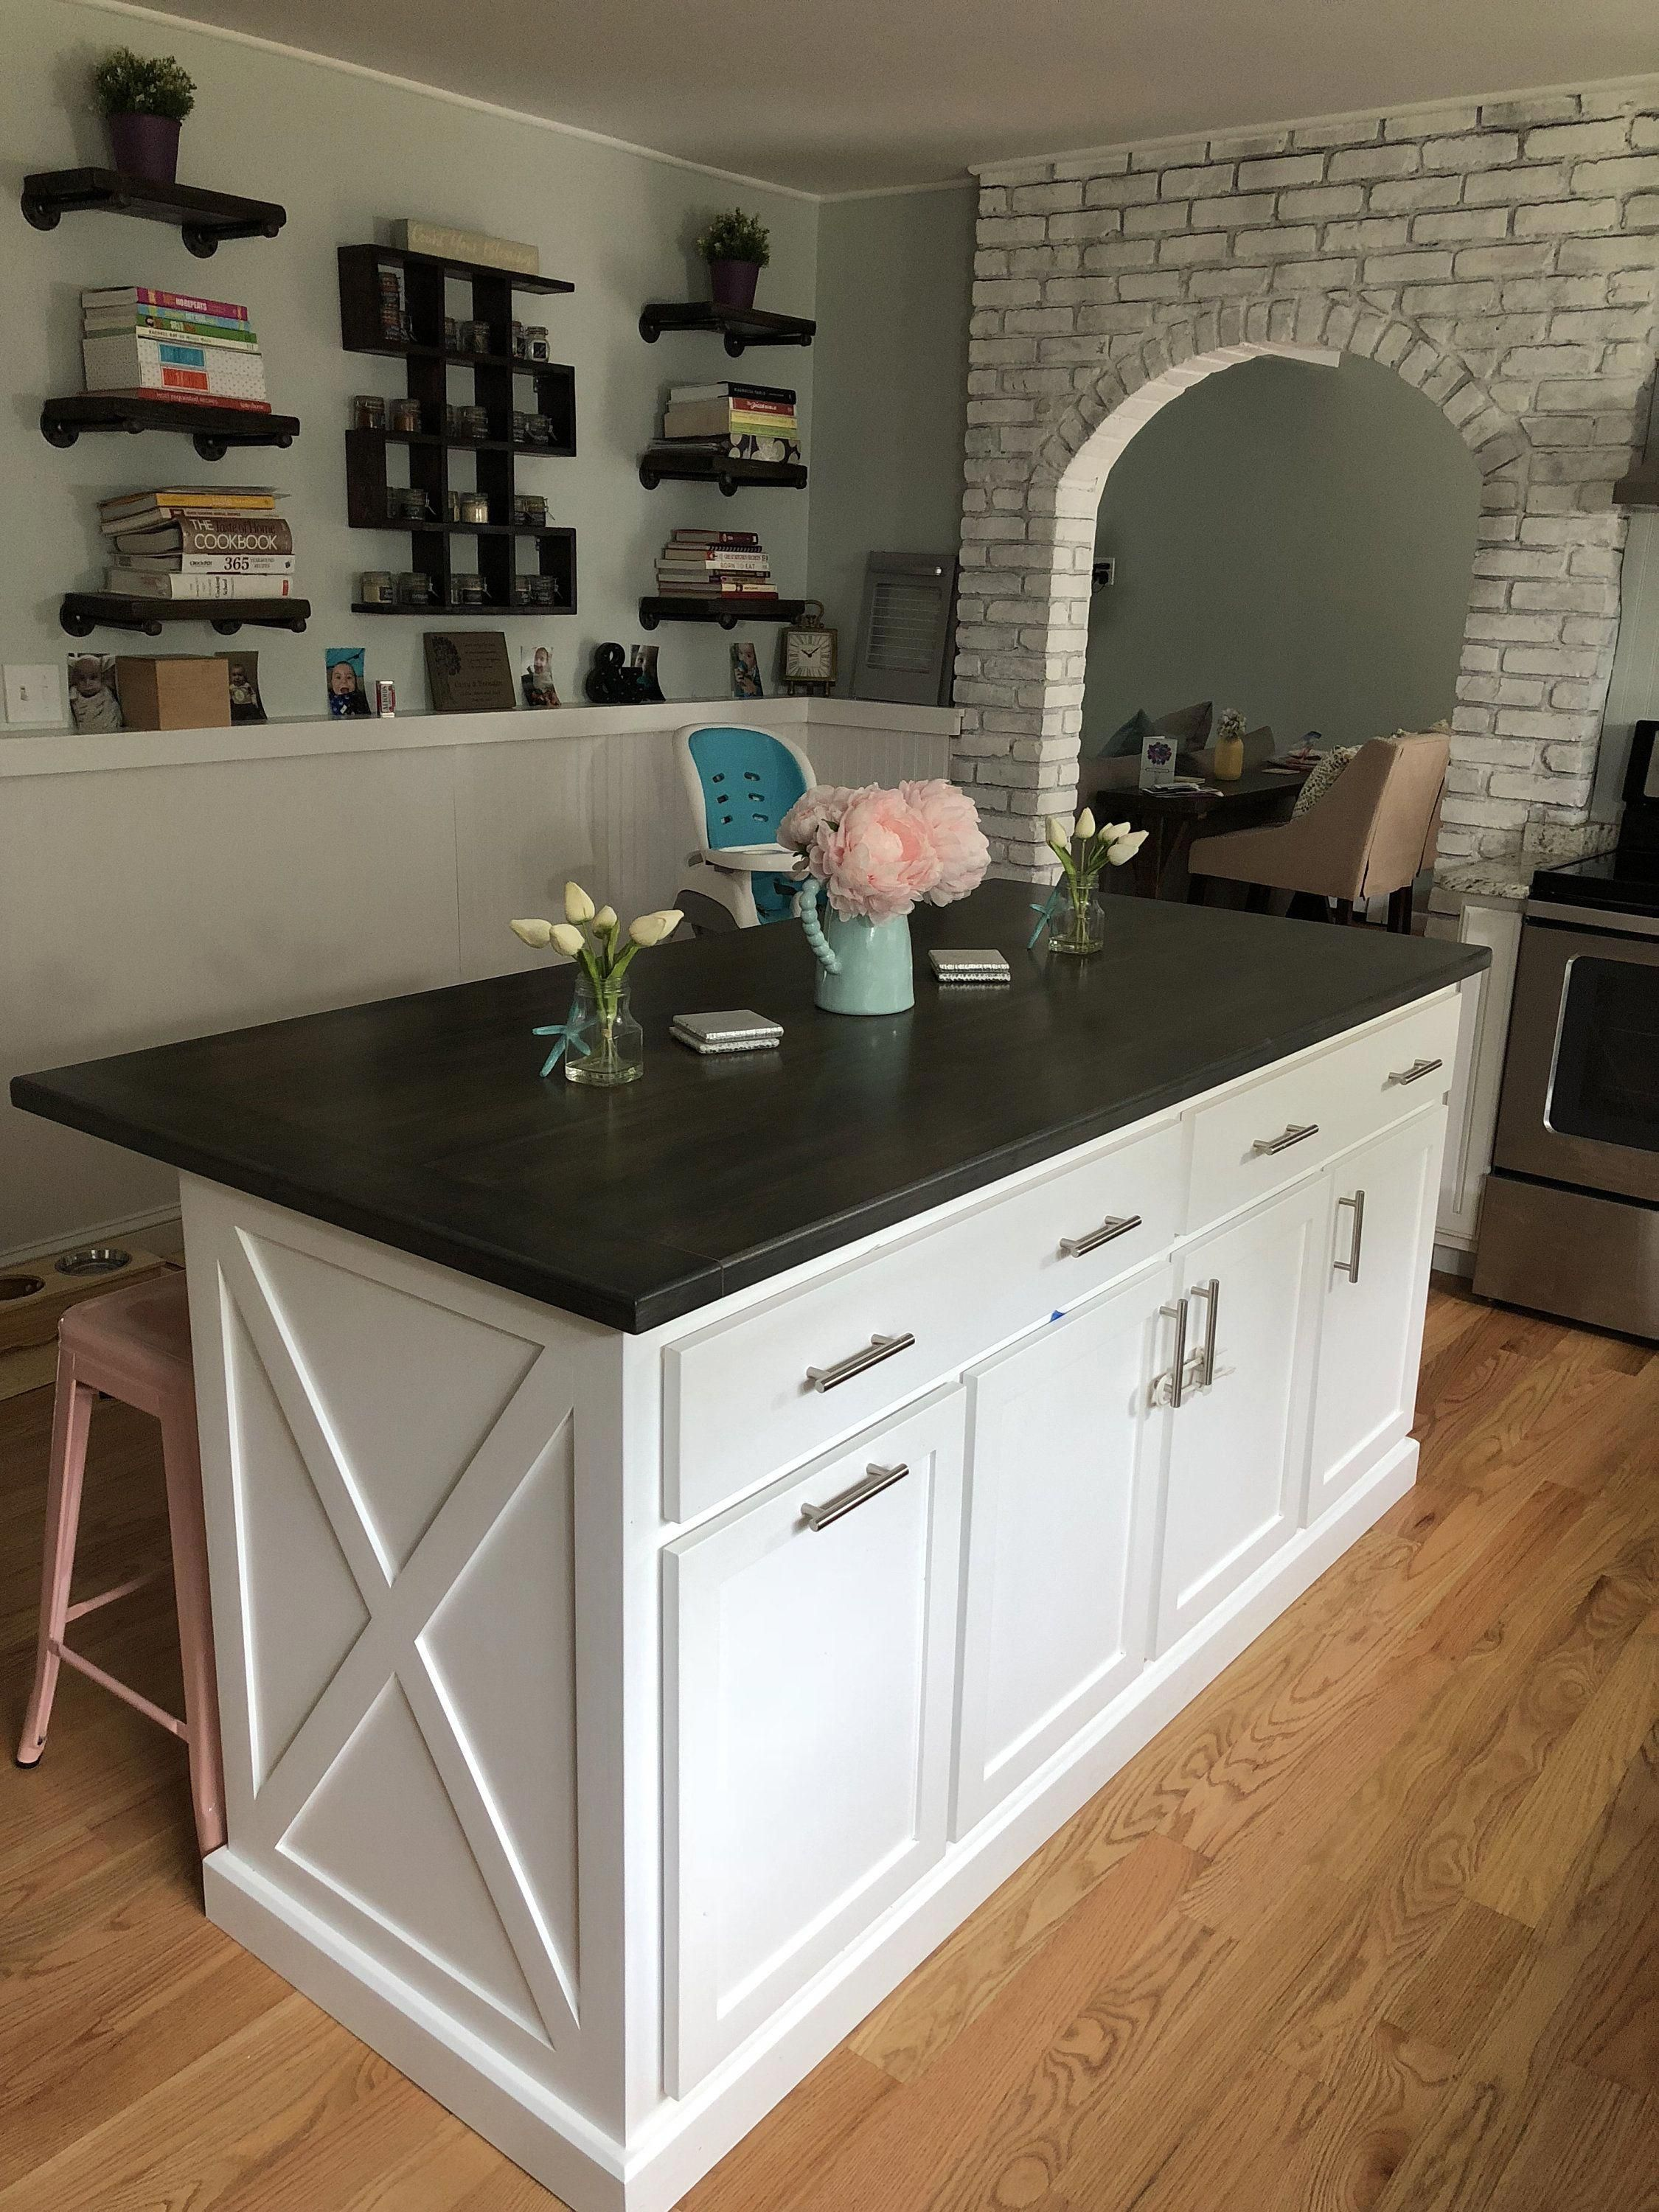 kitchen island with seating by worthysrunfurniture on etsy diykitchencountertops in 2020 on kitchen island id=23035